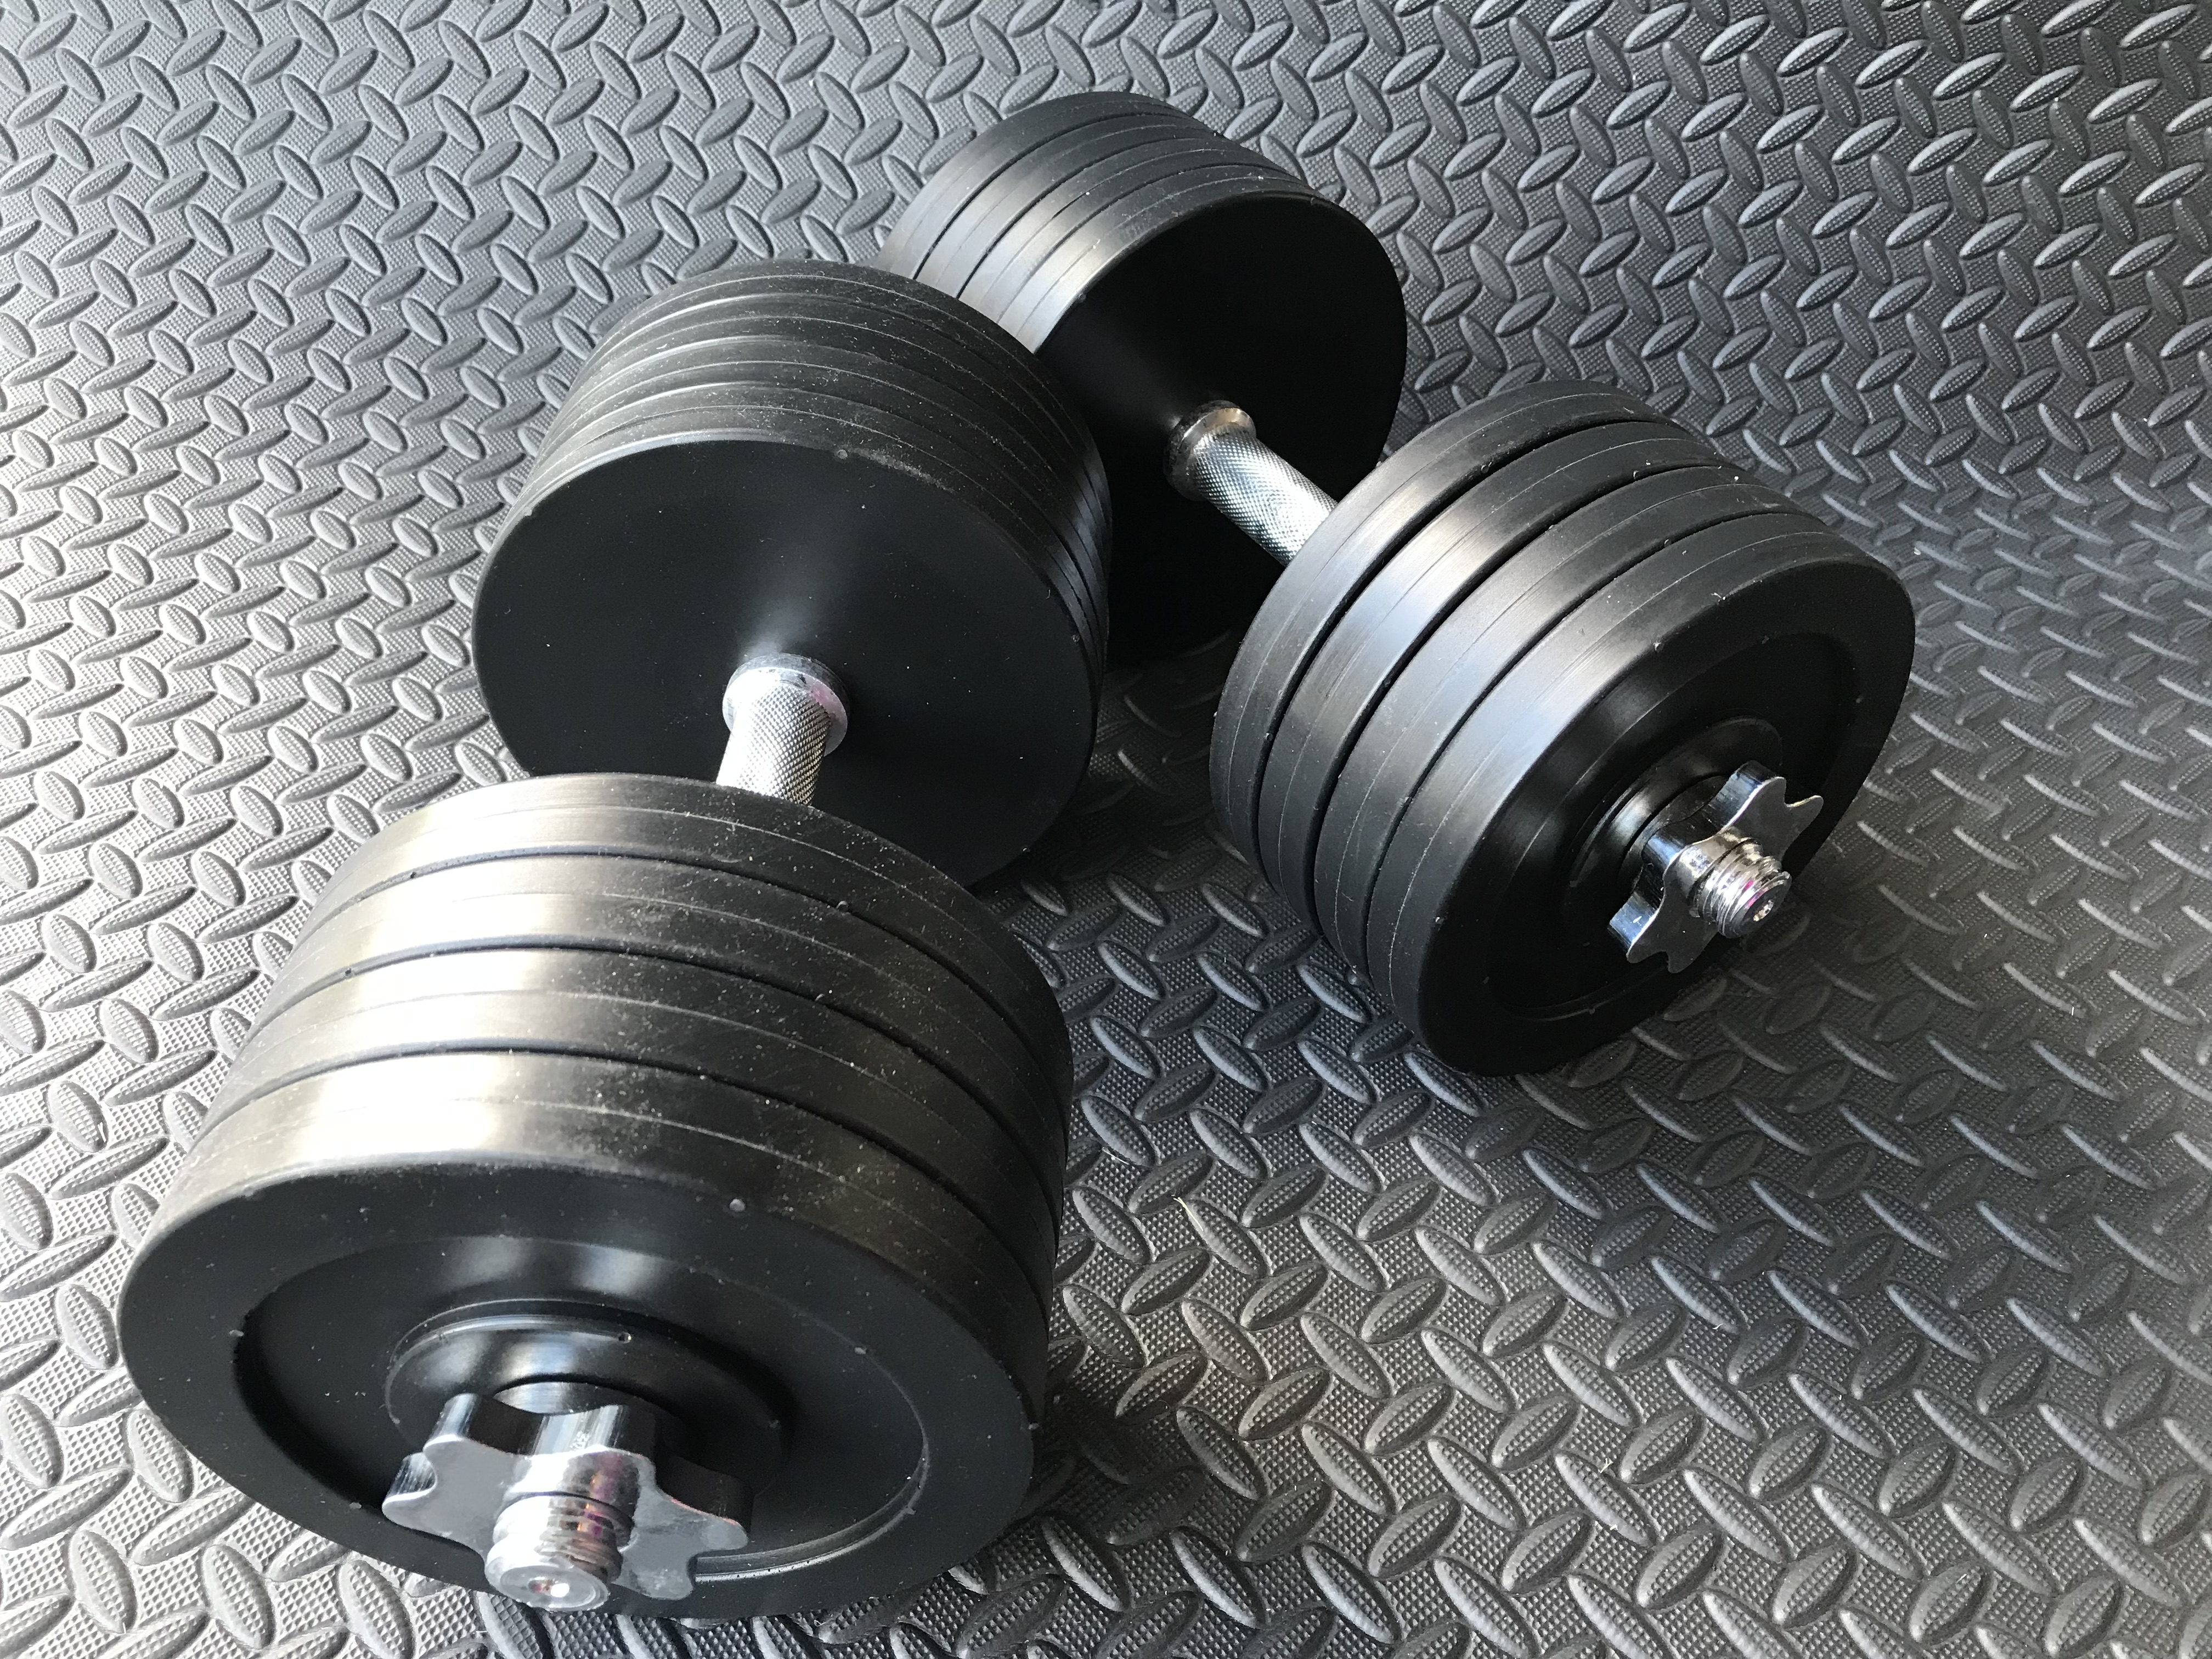 fake weights, fakeweights.com, buy fake weights, fake dumbbell props, fake